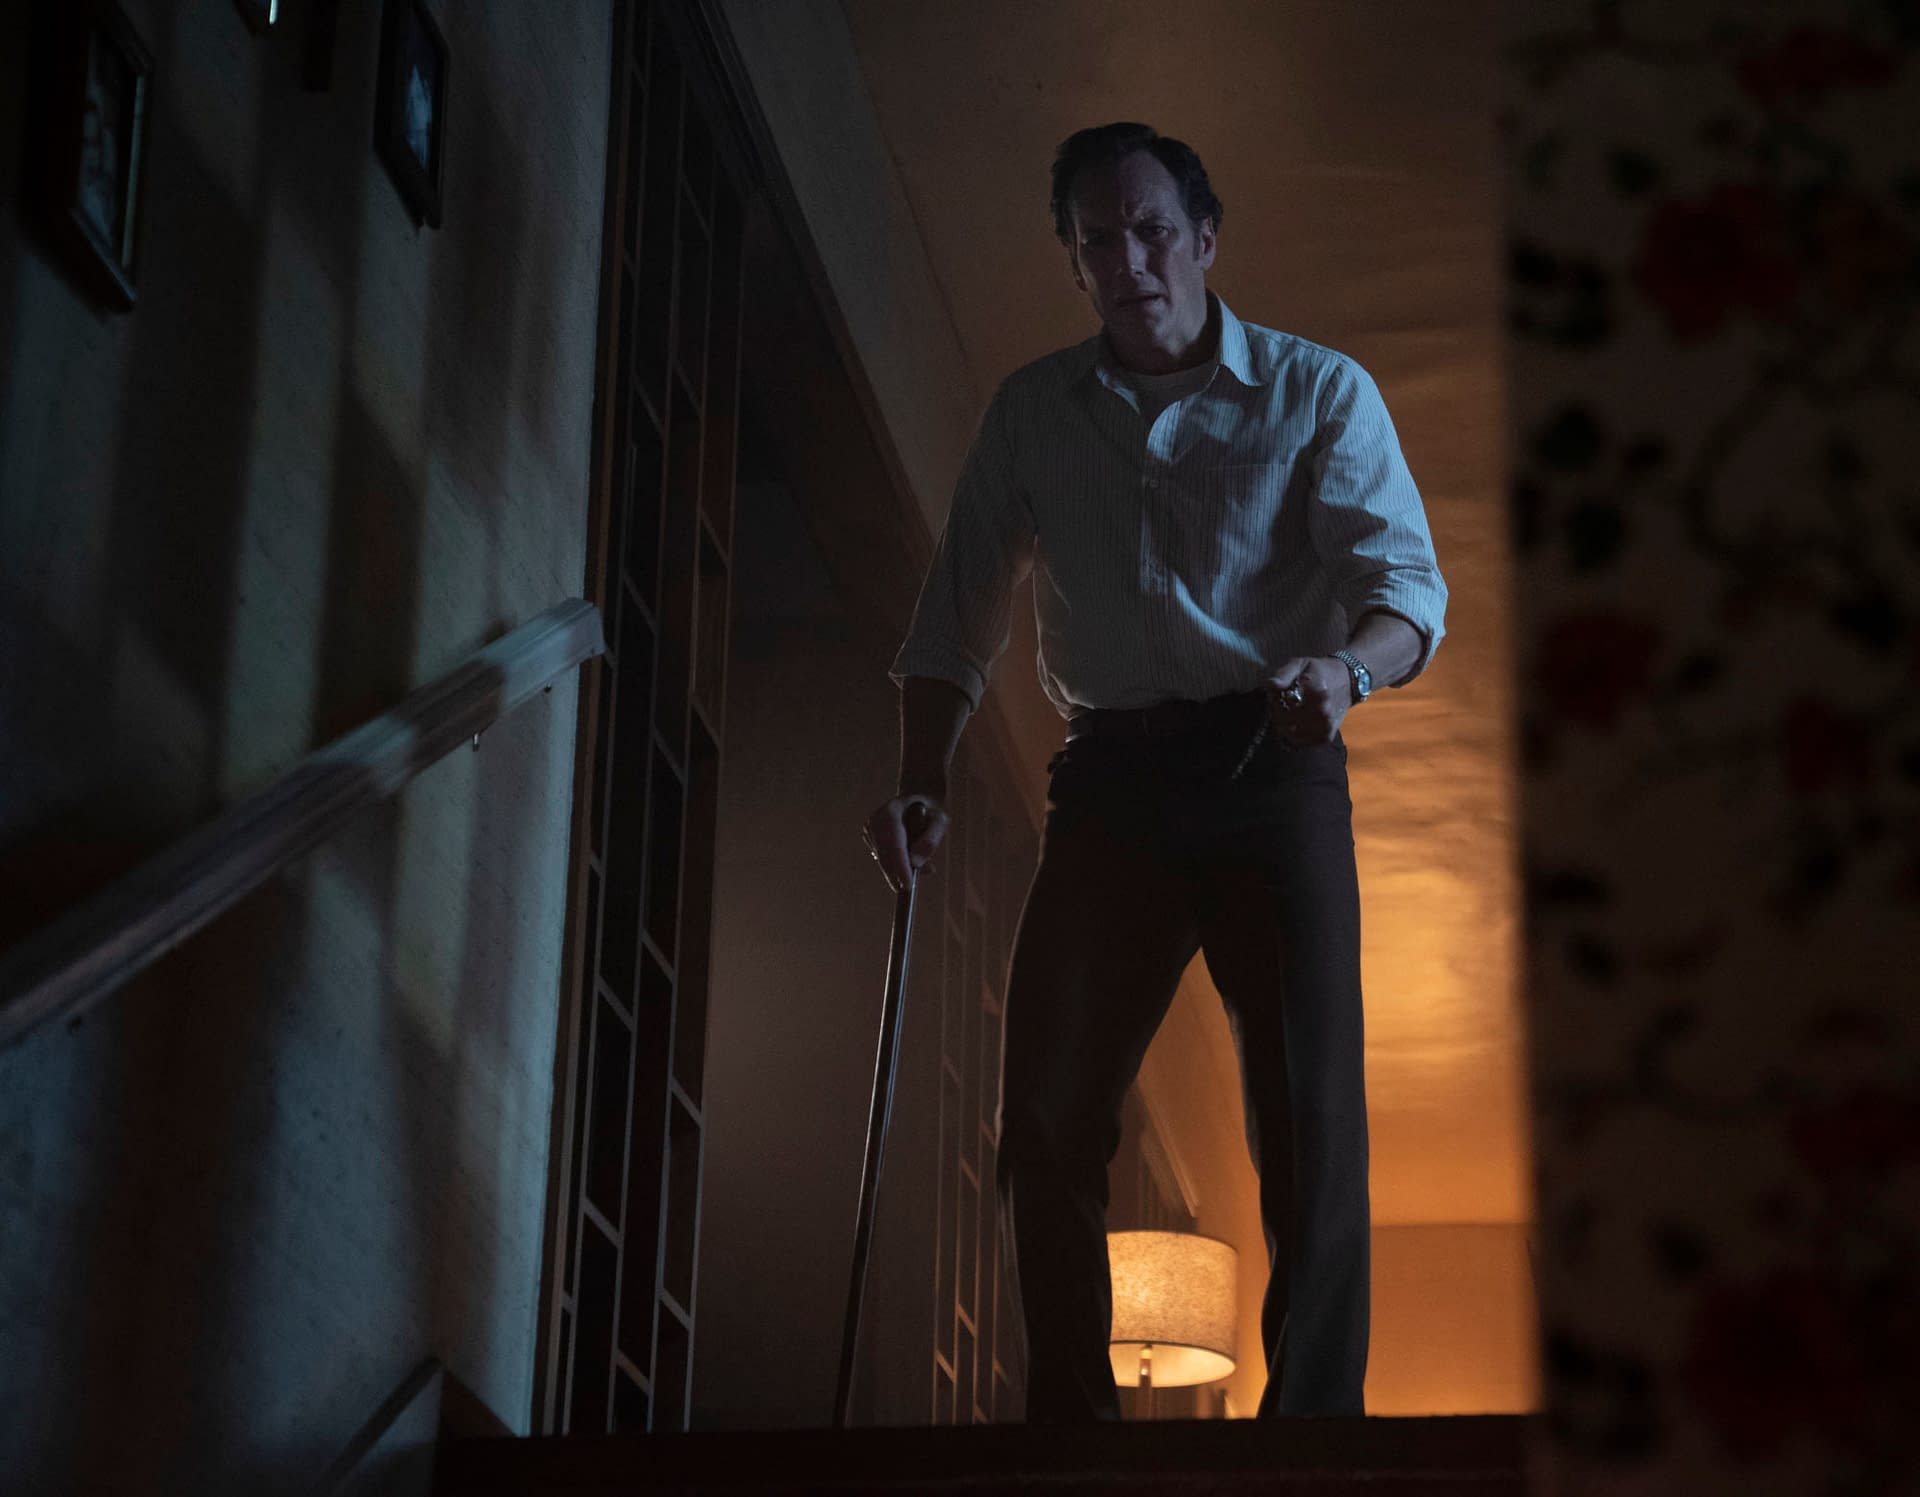 The Conjuring: The Devil Made Me Do It Drops A Ton Of New Images